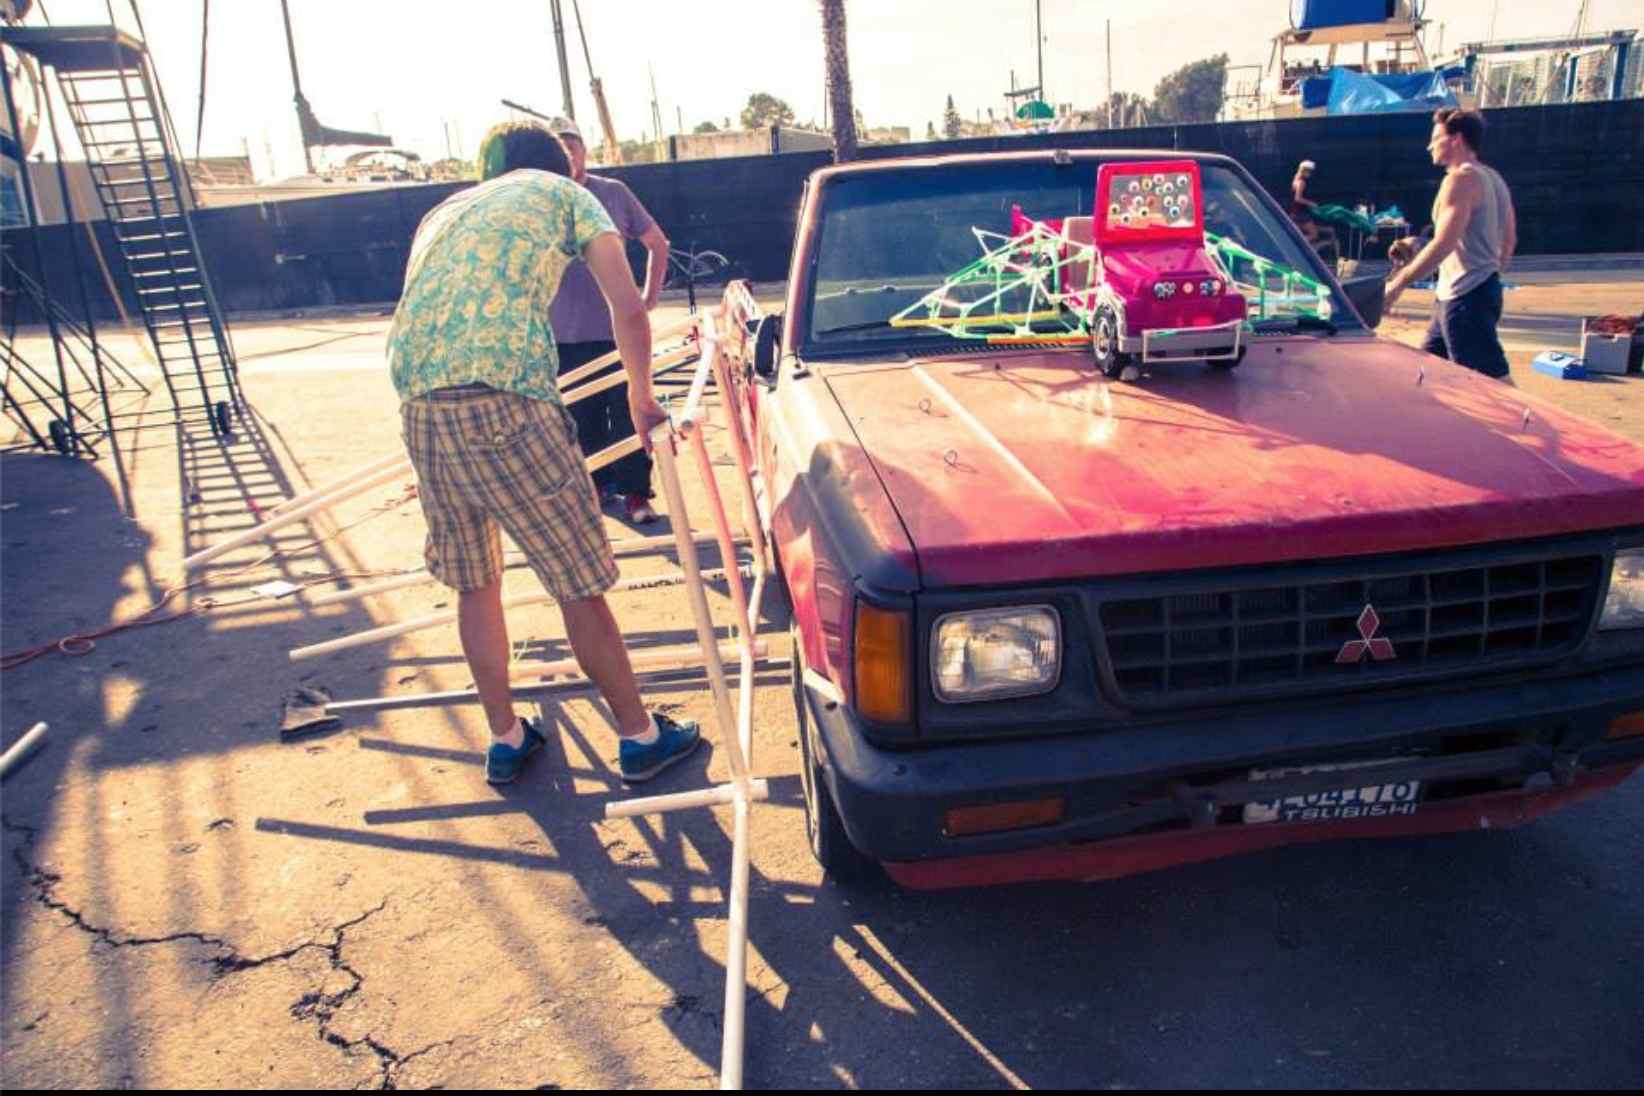 Screen Shot 2013-07-14 at 1.26.10 AM.jpg